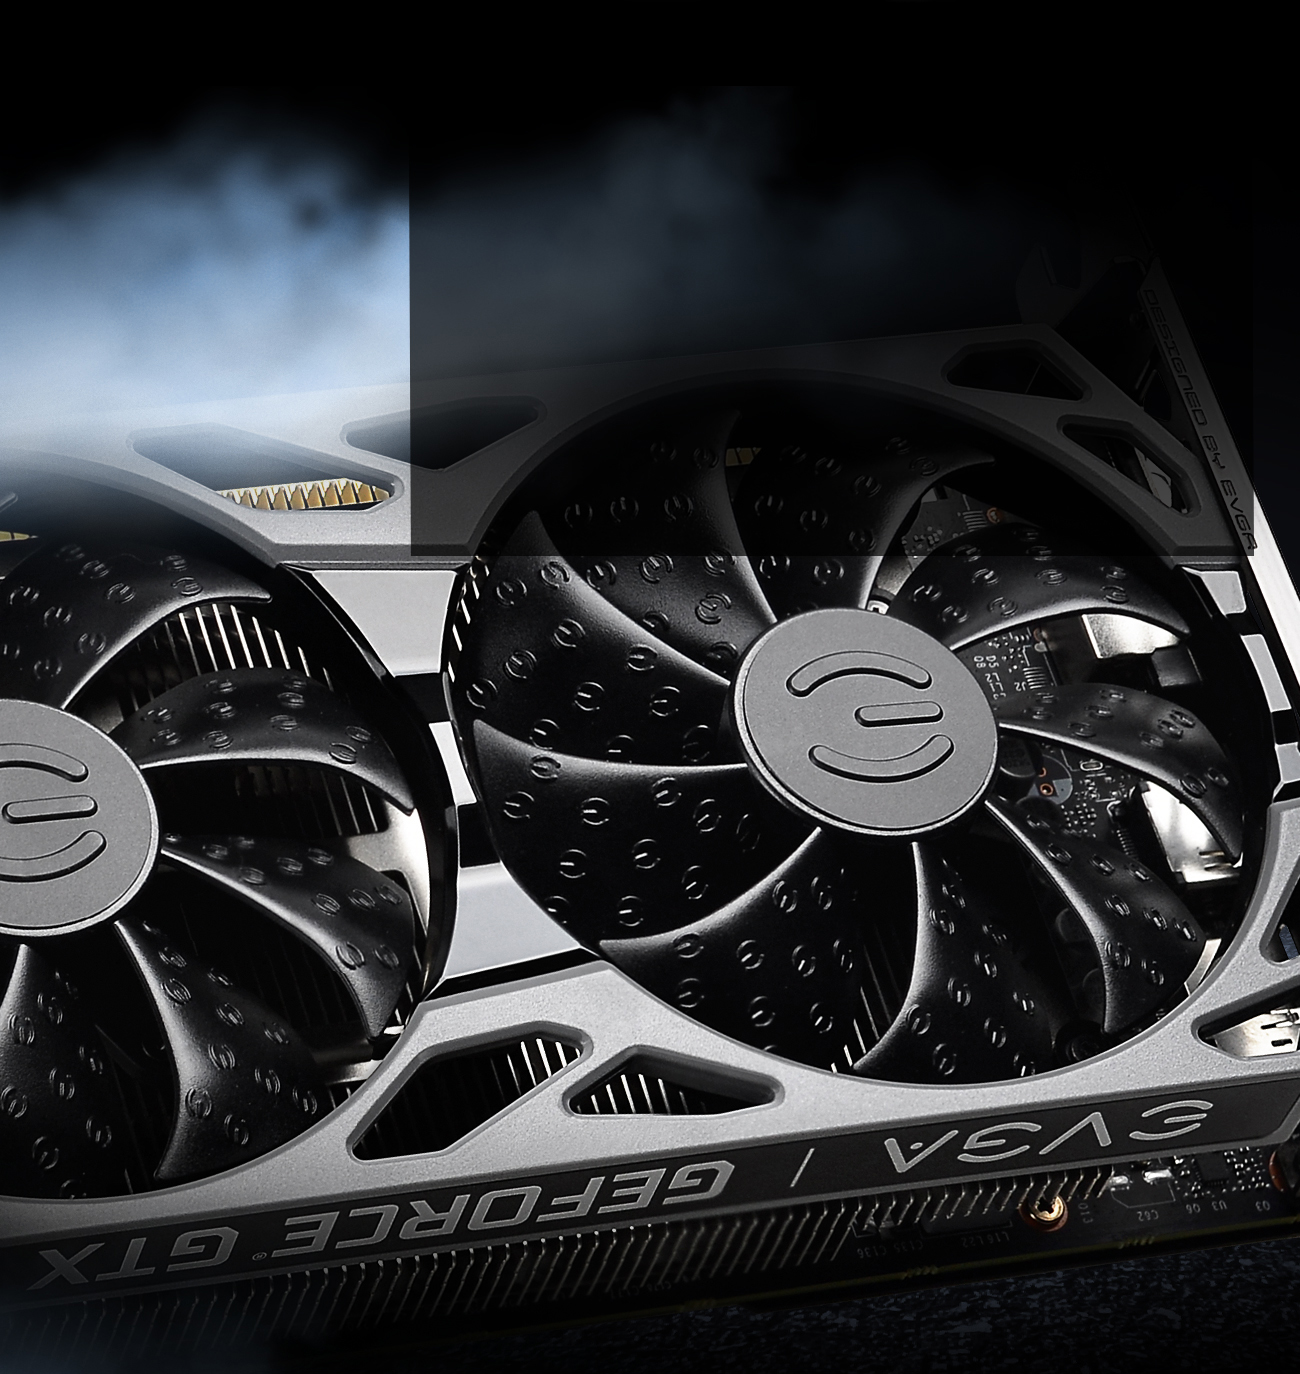 EVGA GeForce GTX 1660 SUPER and GeForce GTX 1650 SUPER gaming cards close-up